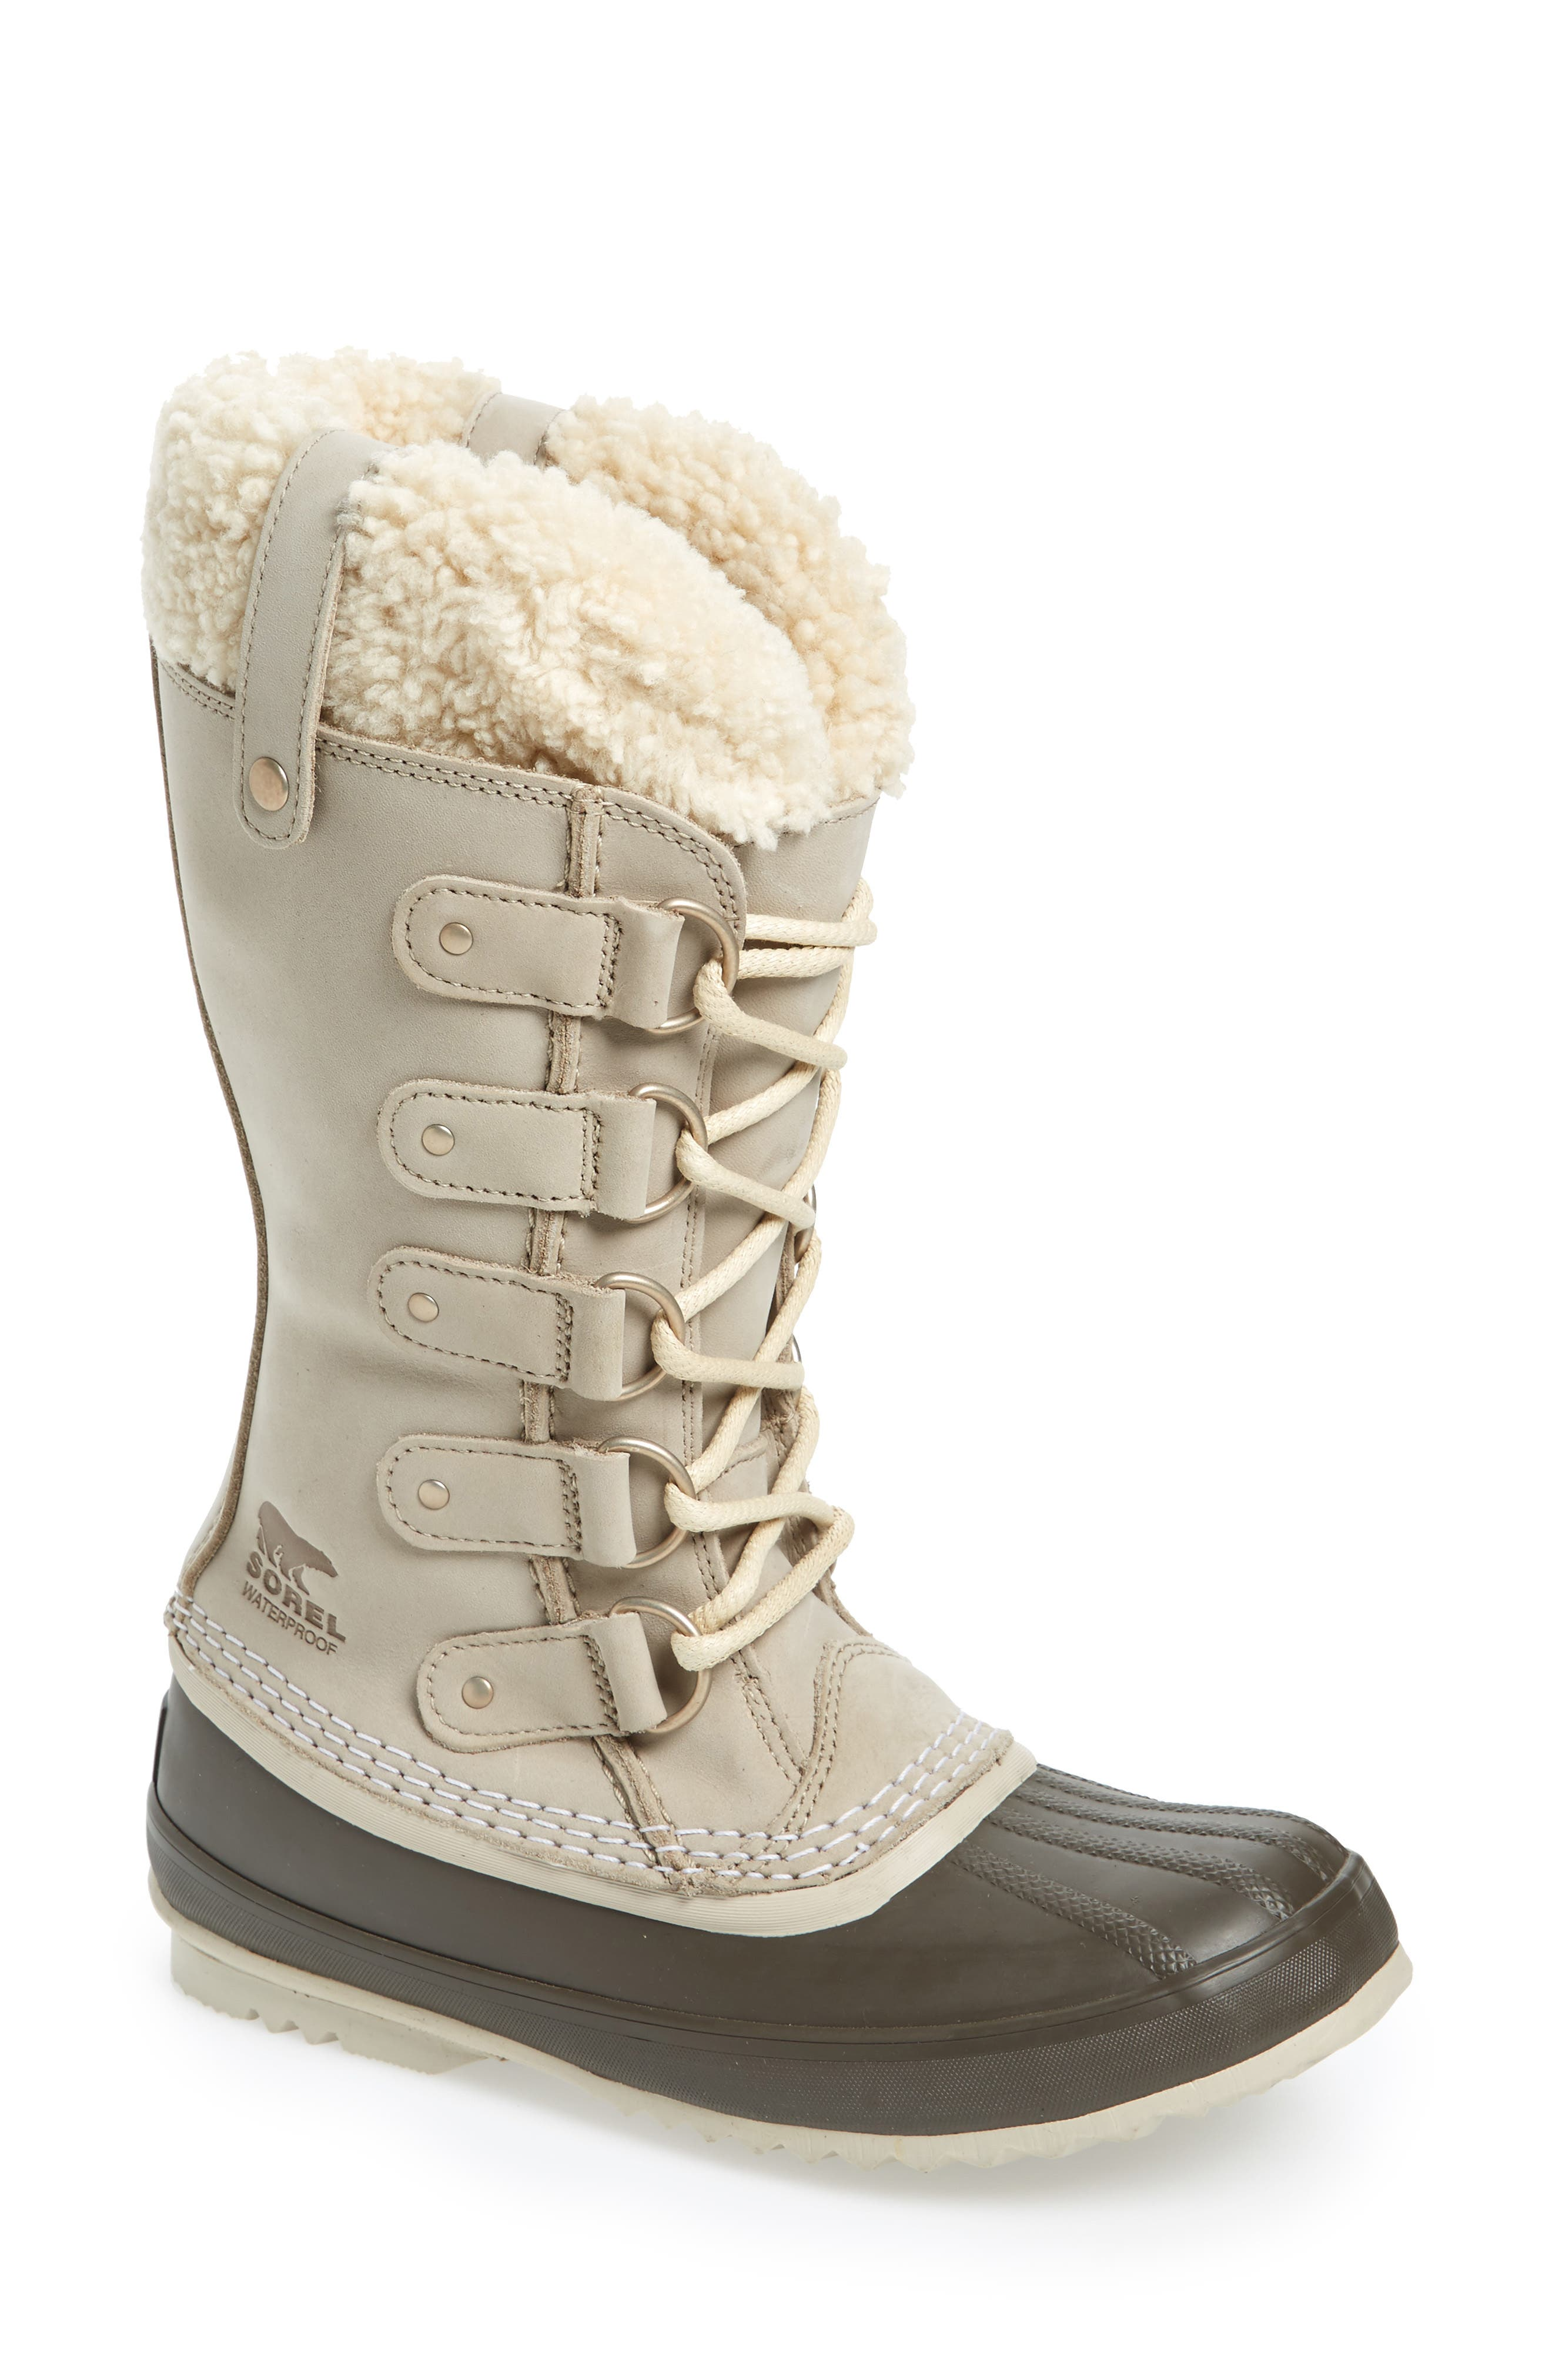 Joan of Arctic<sup>™</sup> Lux Waterproof Winter Boot with Genuine  Shearling Cuff,                             Main thumbnail 1, color,                             Ancient Fossil/ Mud